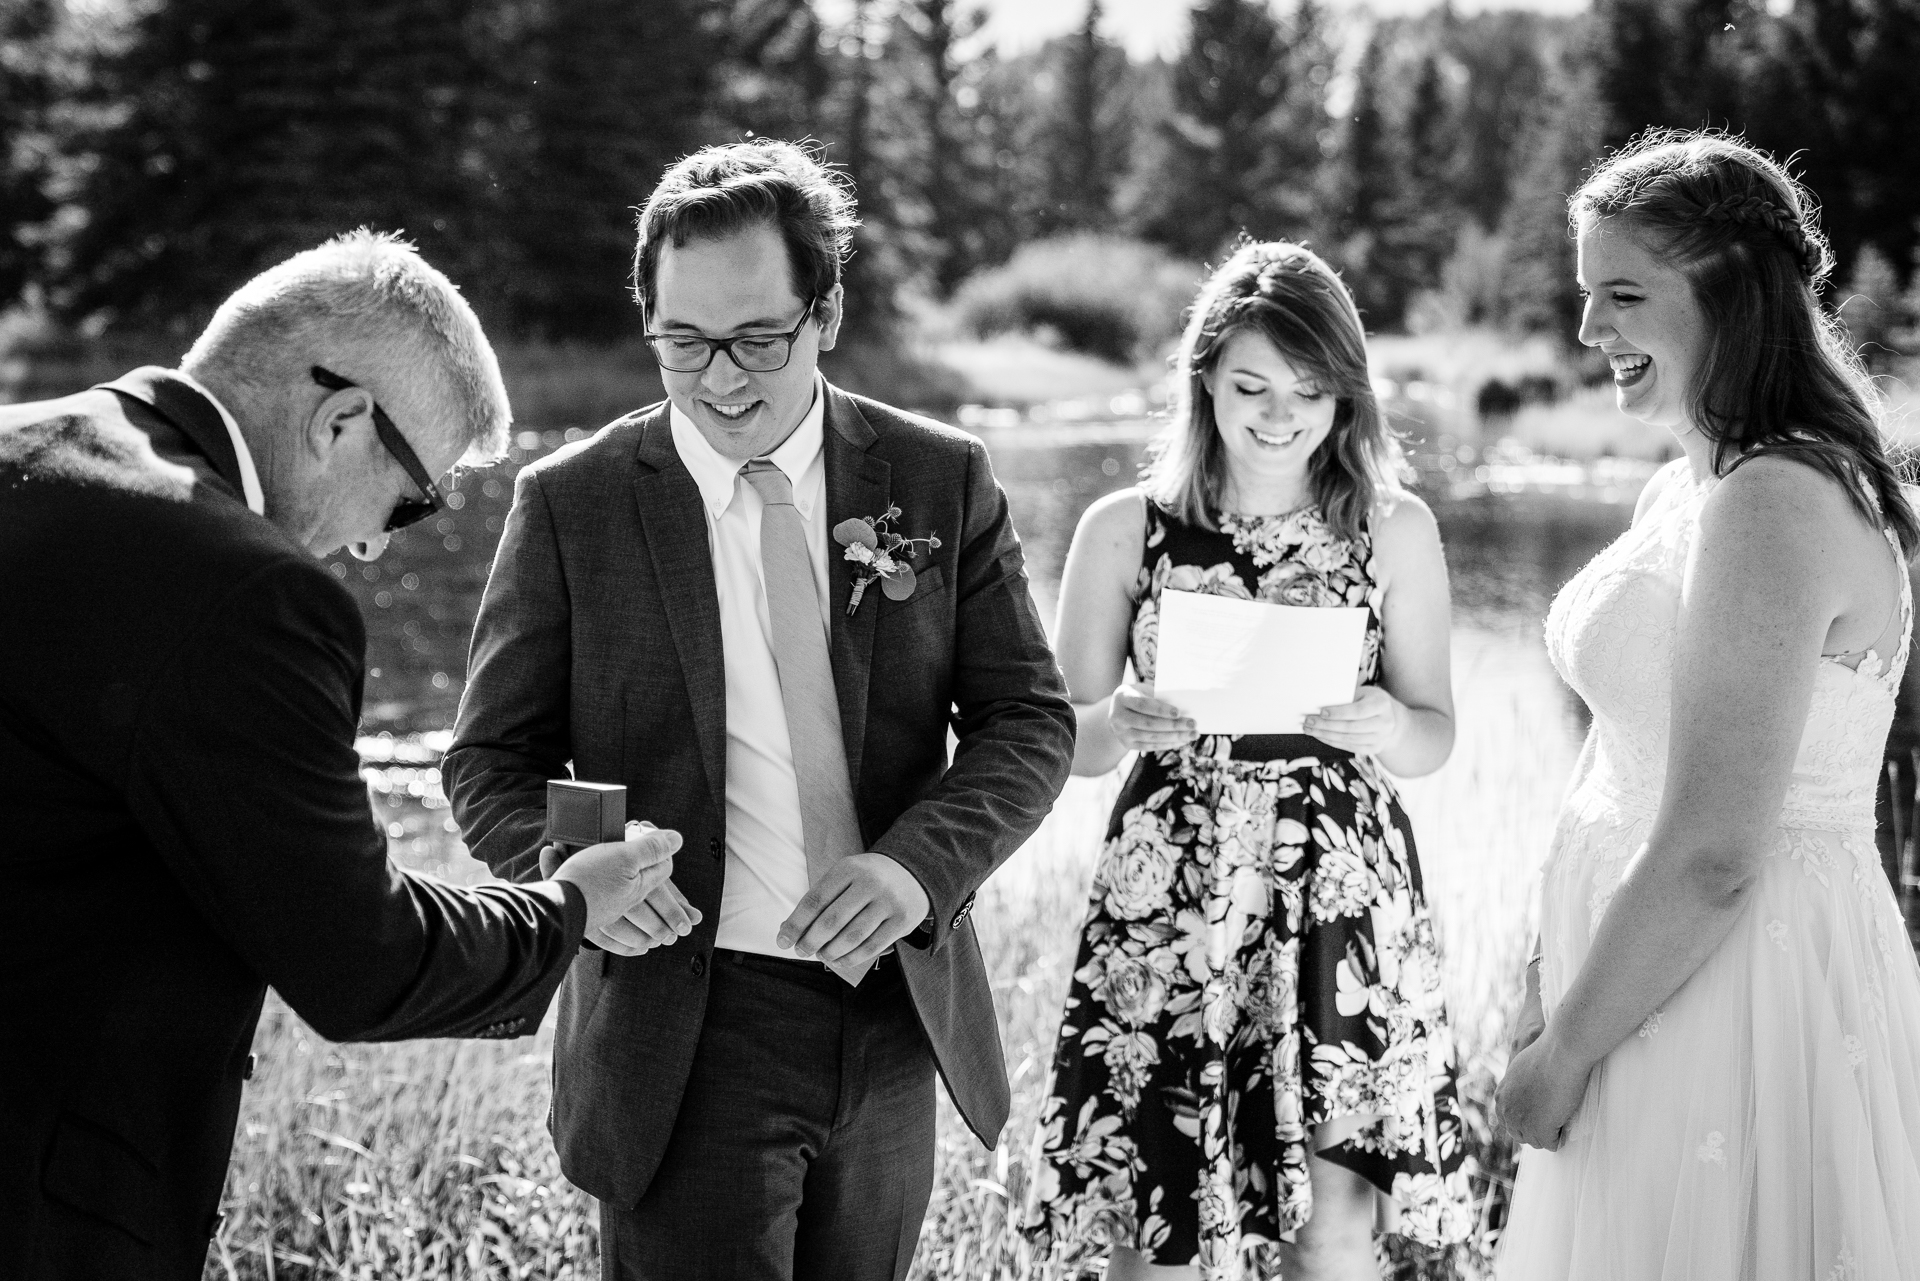 Schwabachers Landing, Wyoming Outdoor Elopement Ceremony Image | Father of the bride doing his duties with honor as he brings the rings